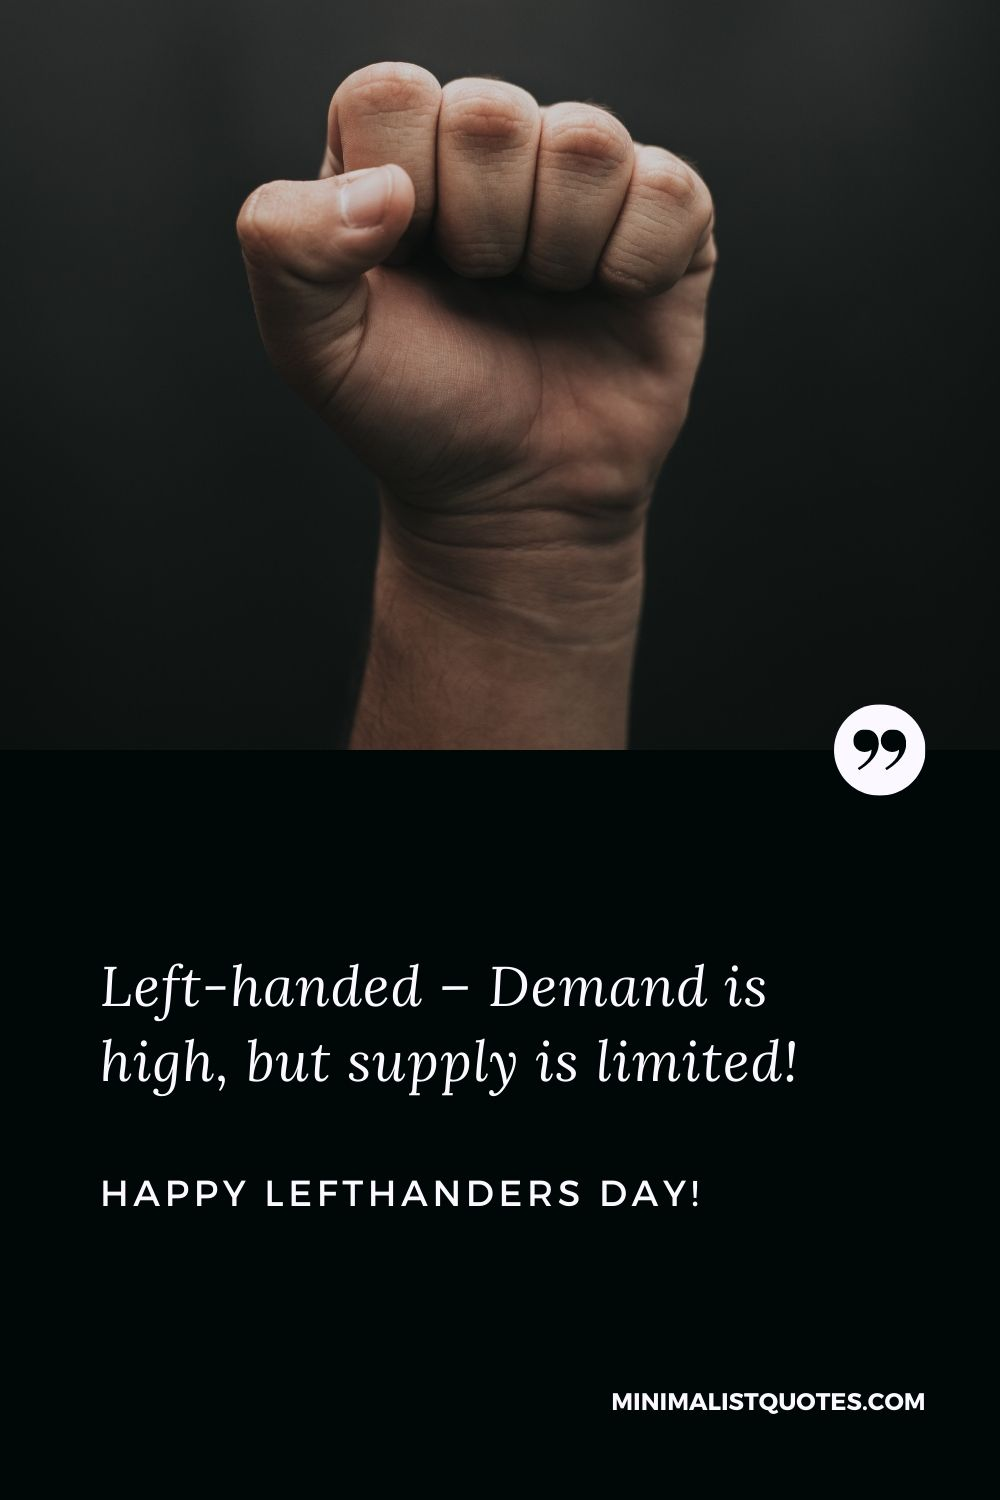 Happy Left Handers Day Images: Left-handed – Demand is high, but supply is limited.